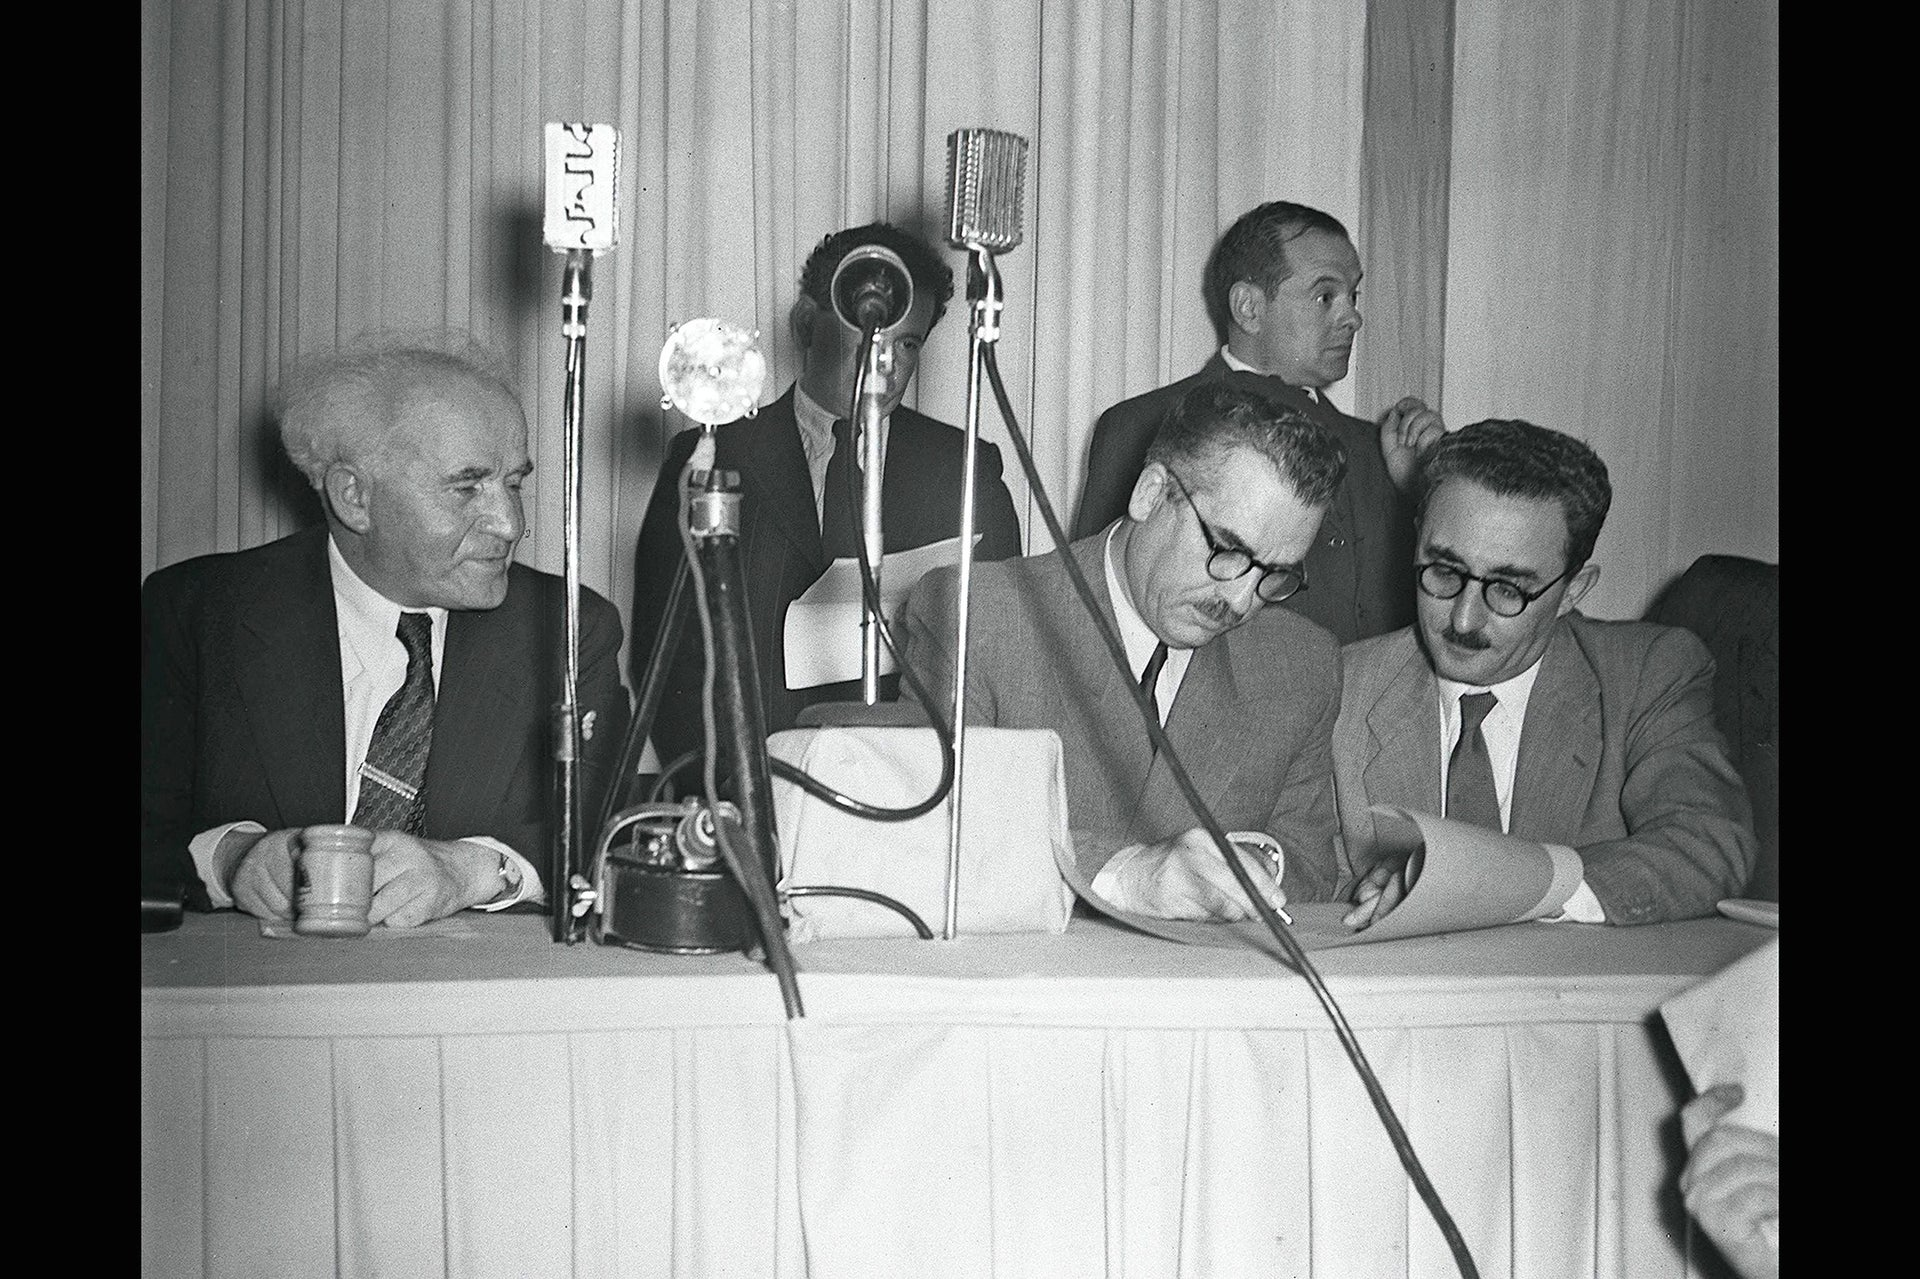 The signing of the declaration of the State of Israel, May 15, 1948.